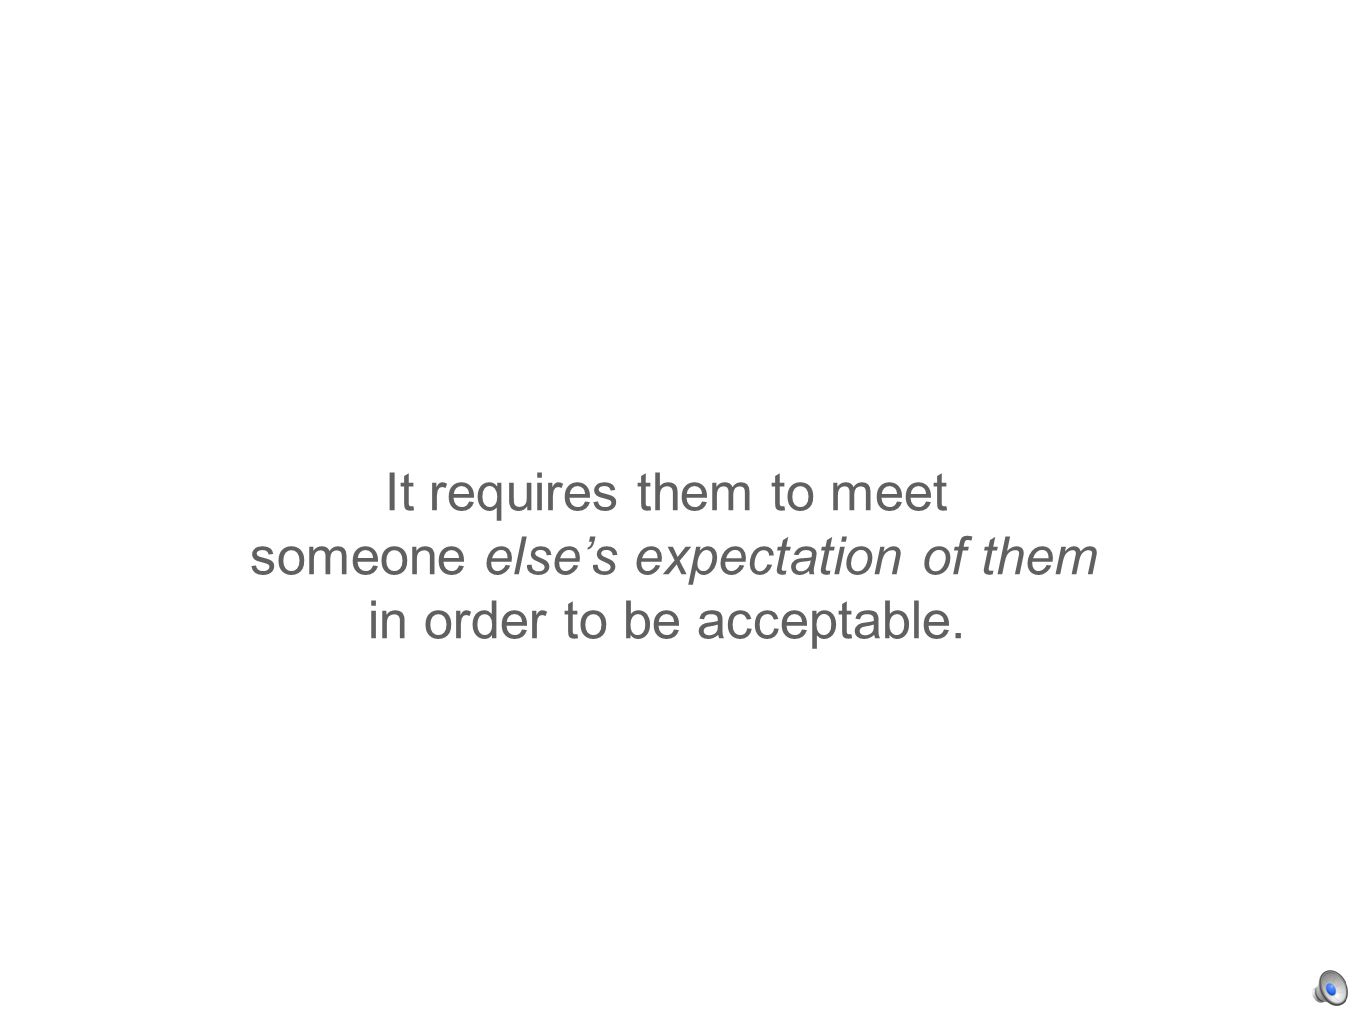 It requires them to meet someone elses expectation of them in order to be acceptable.